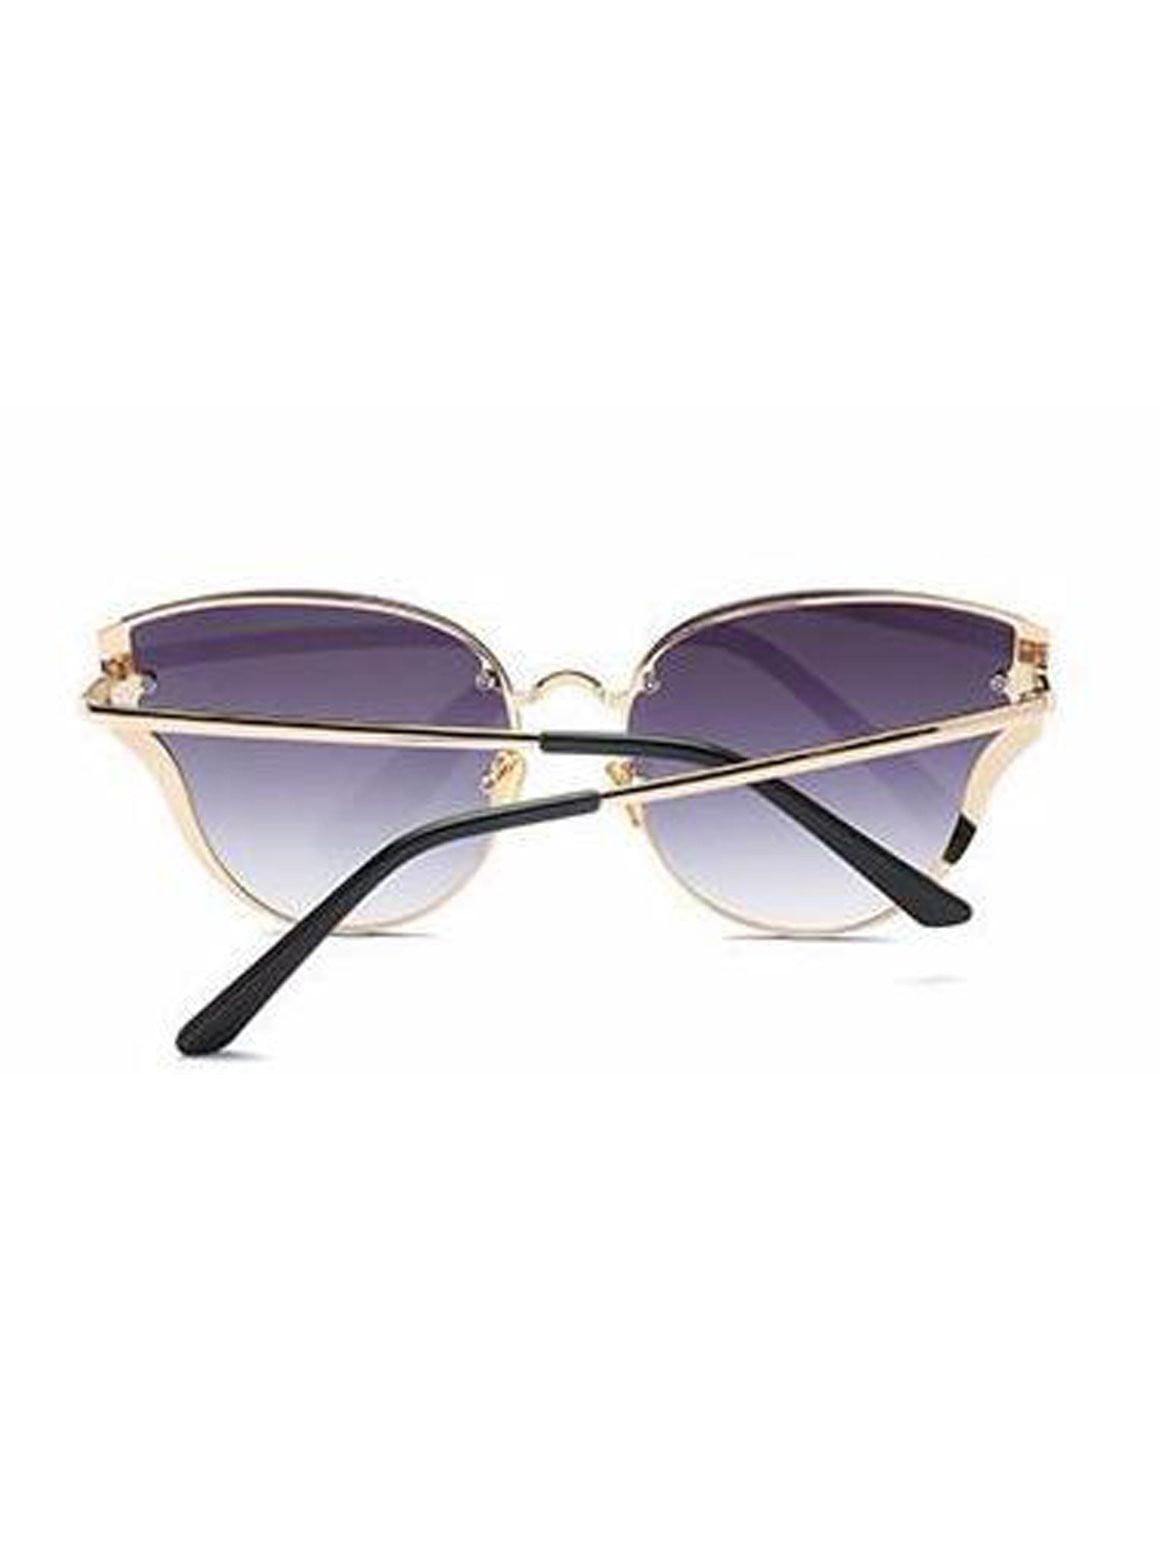 metal frame candy sunglasses - Sunglasses - Zooomberg - Zoomberg